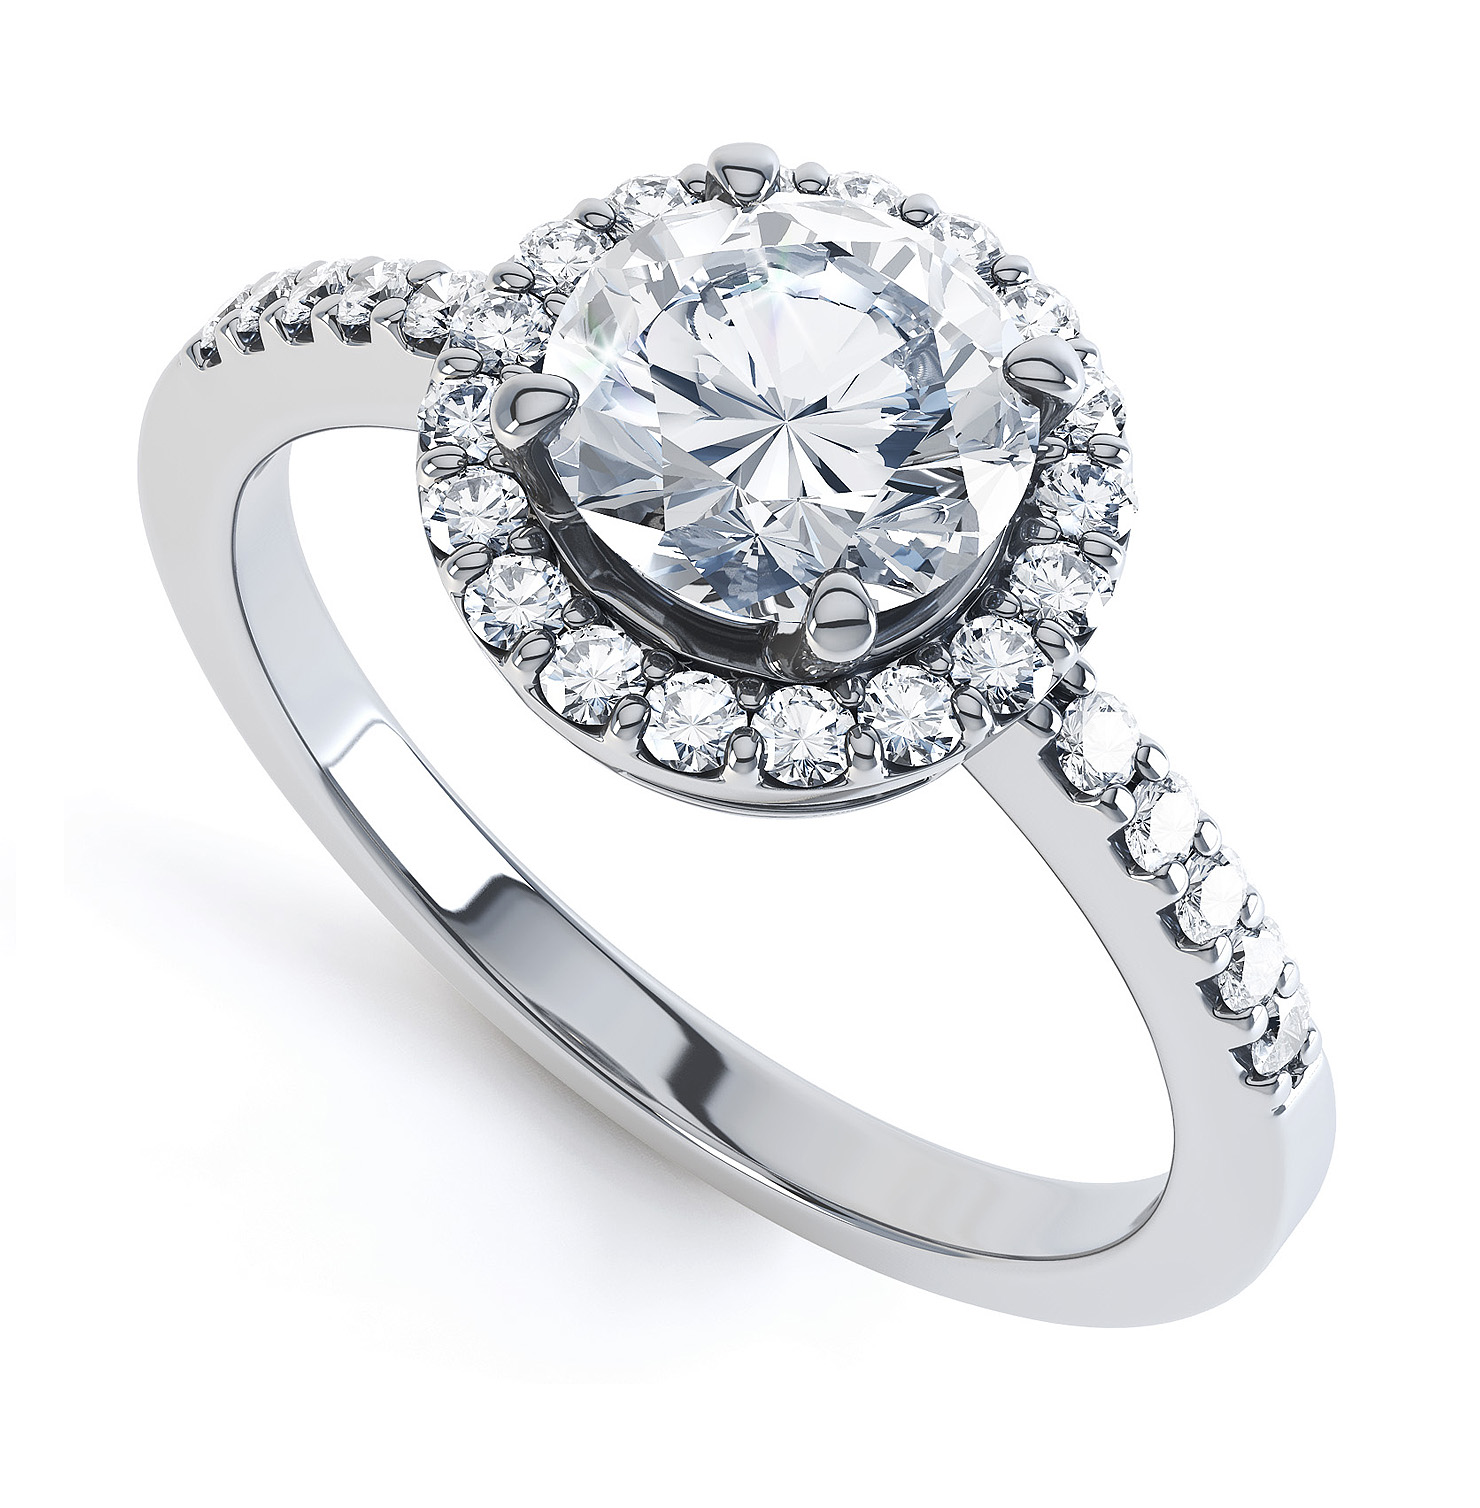 Fashion And Stylish Dresses Blog Tiffany Co Wedding Rings Collection for Women